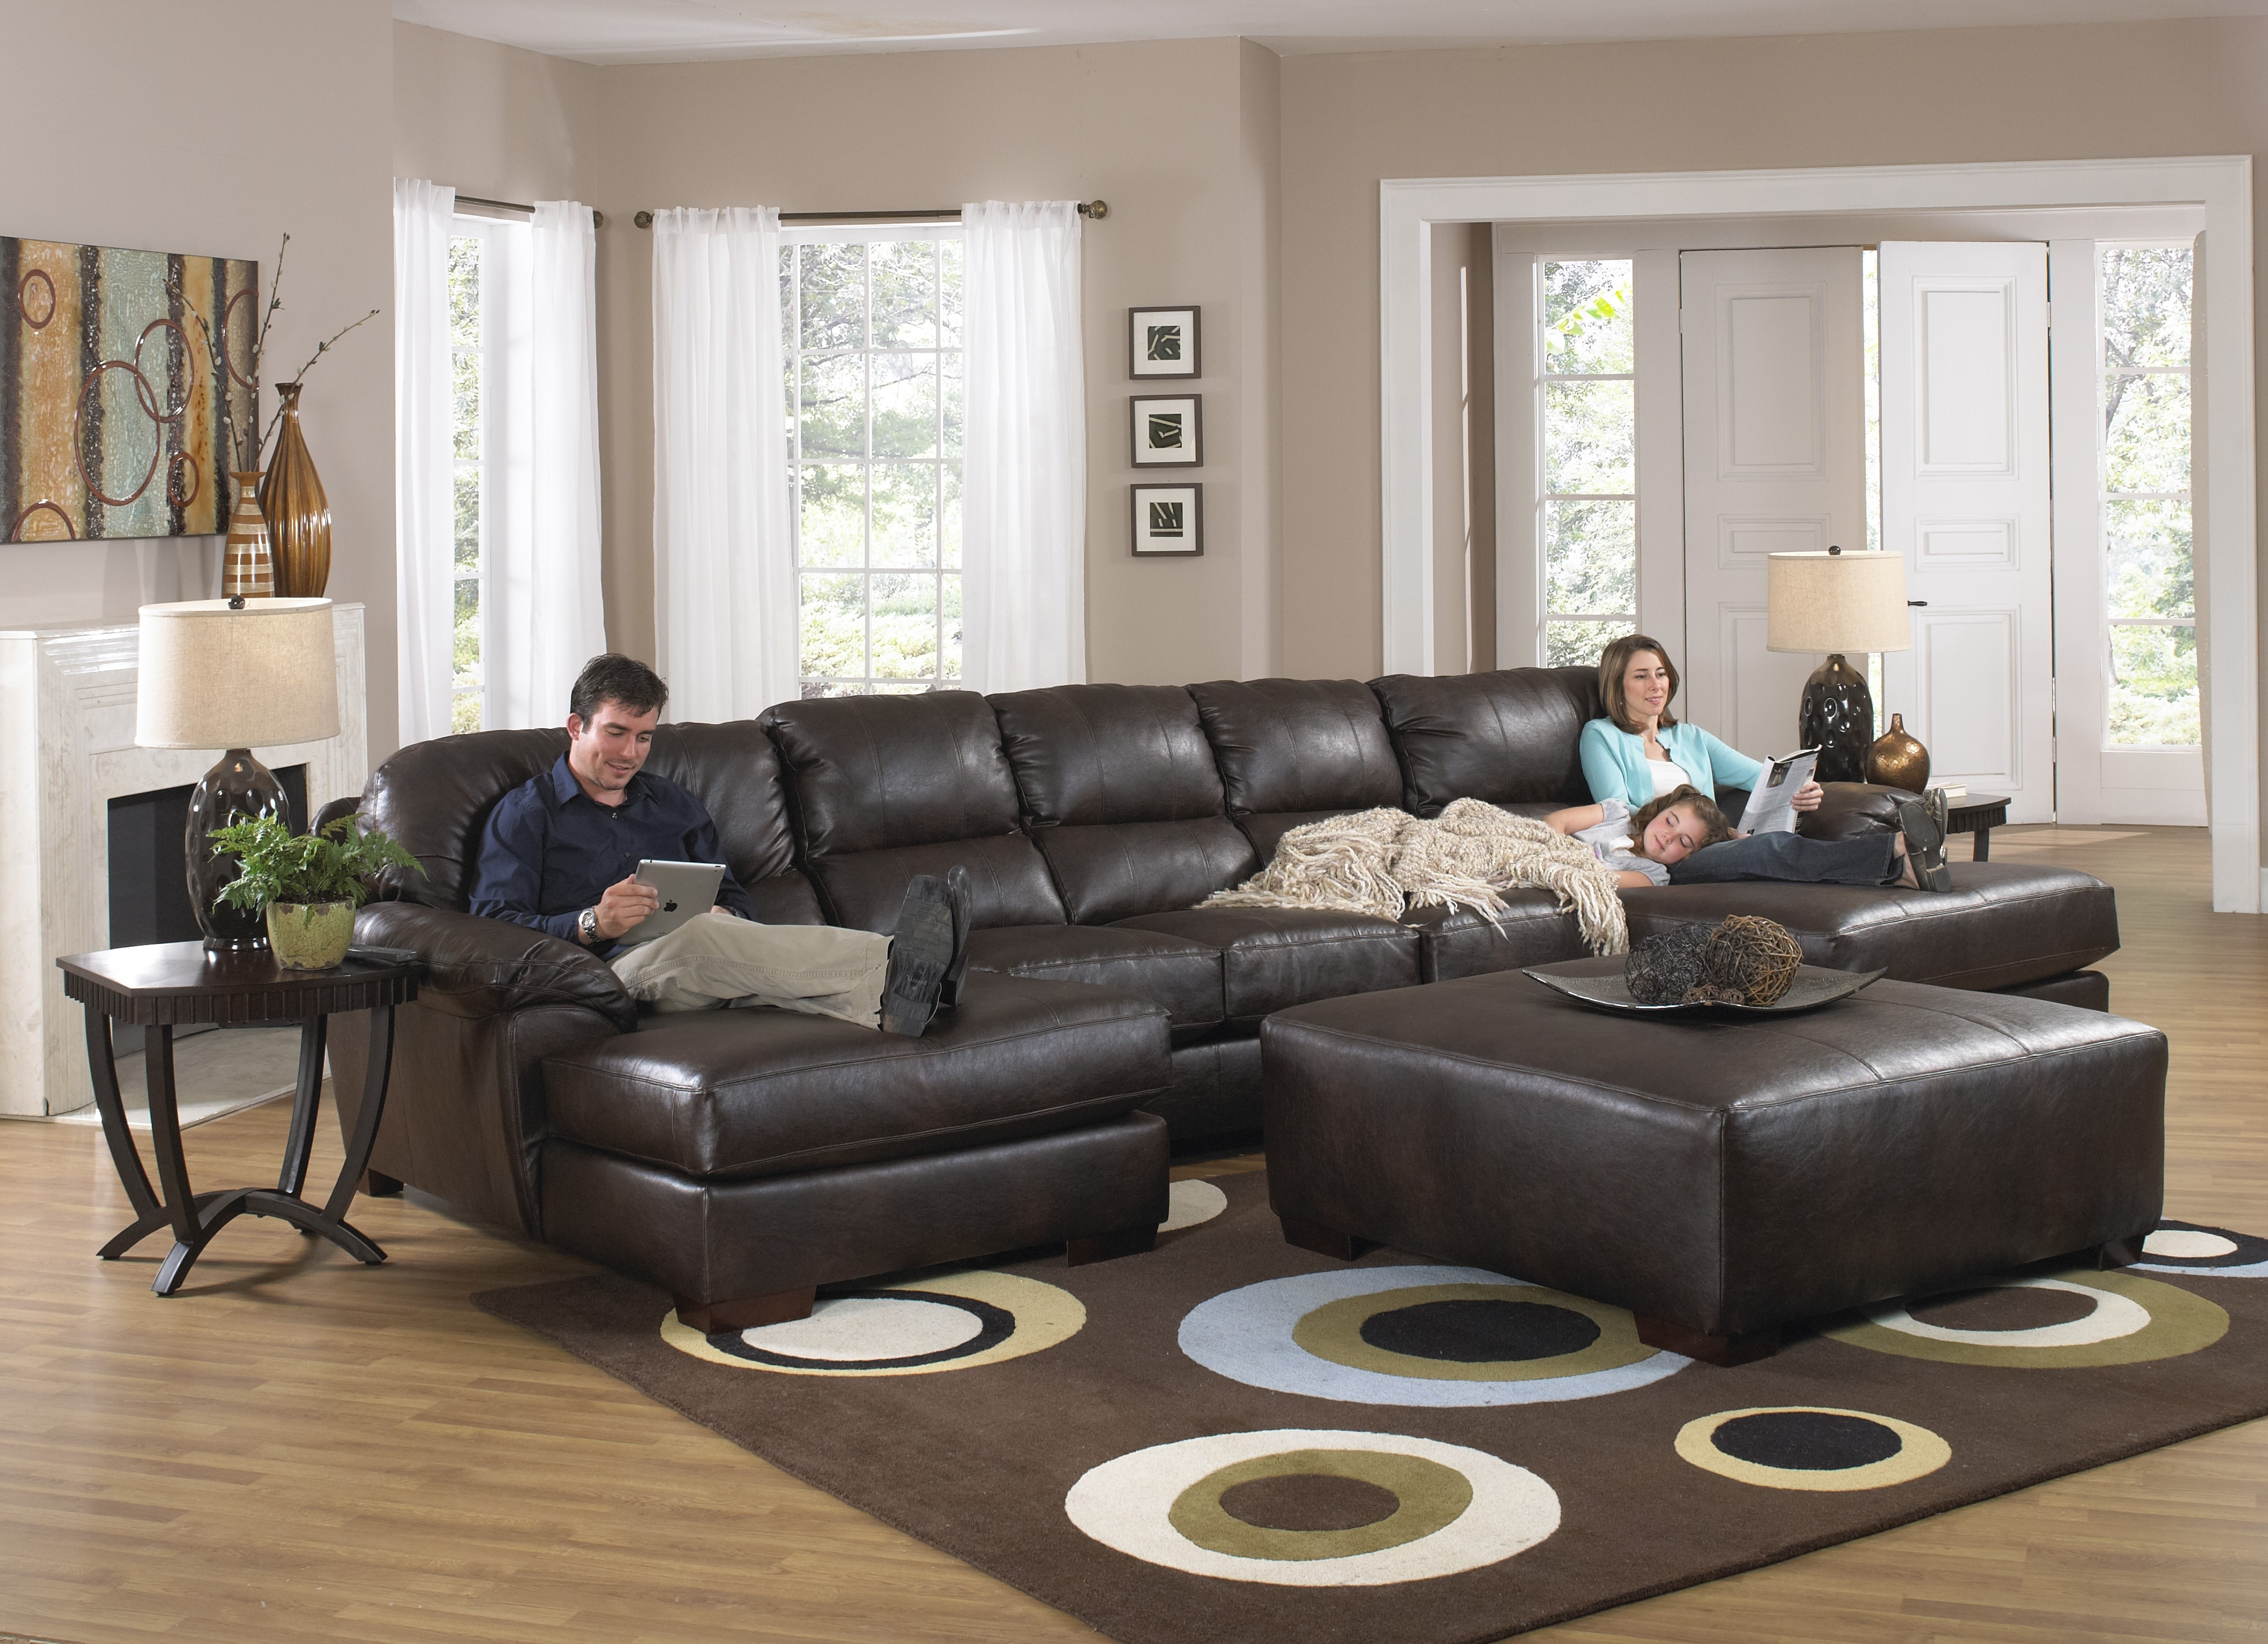 Current Chaise Recliners Intended For Appealing Leather Sectional Sofas With Recliners And Chaise 83 For (View 2 of 15)